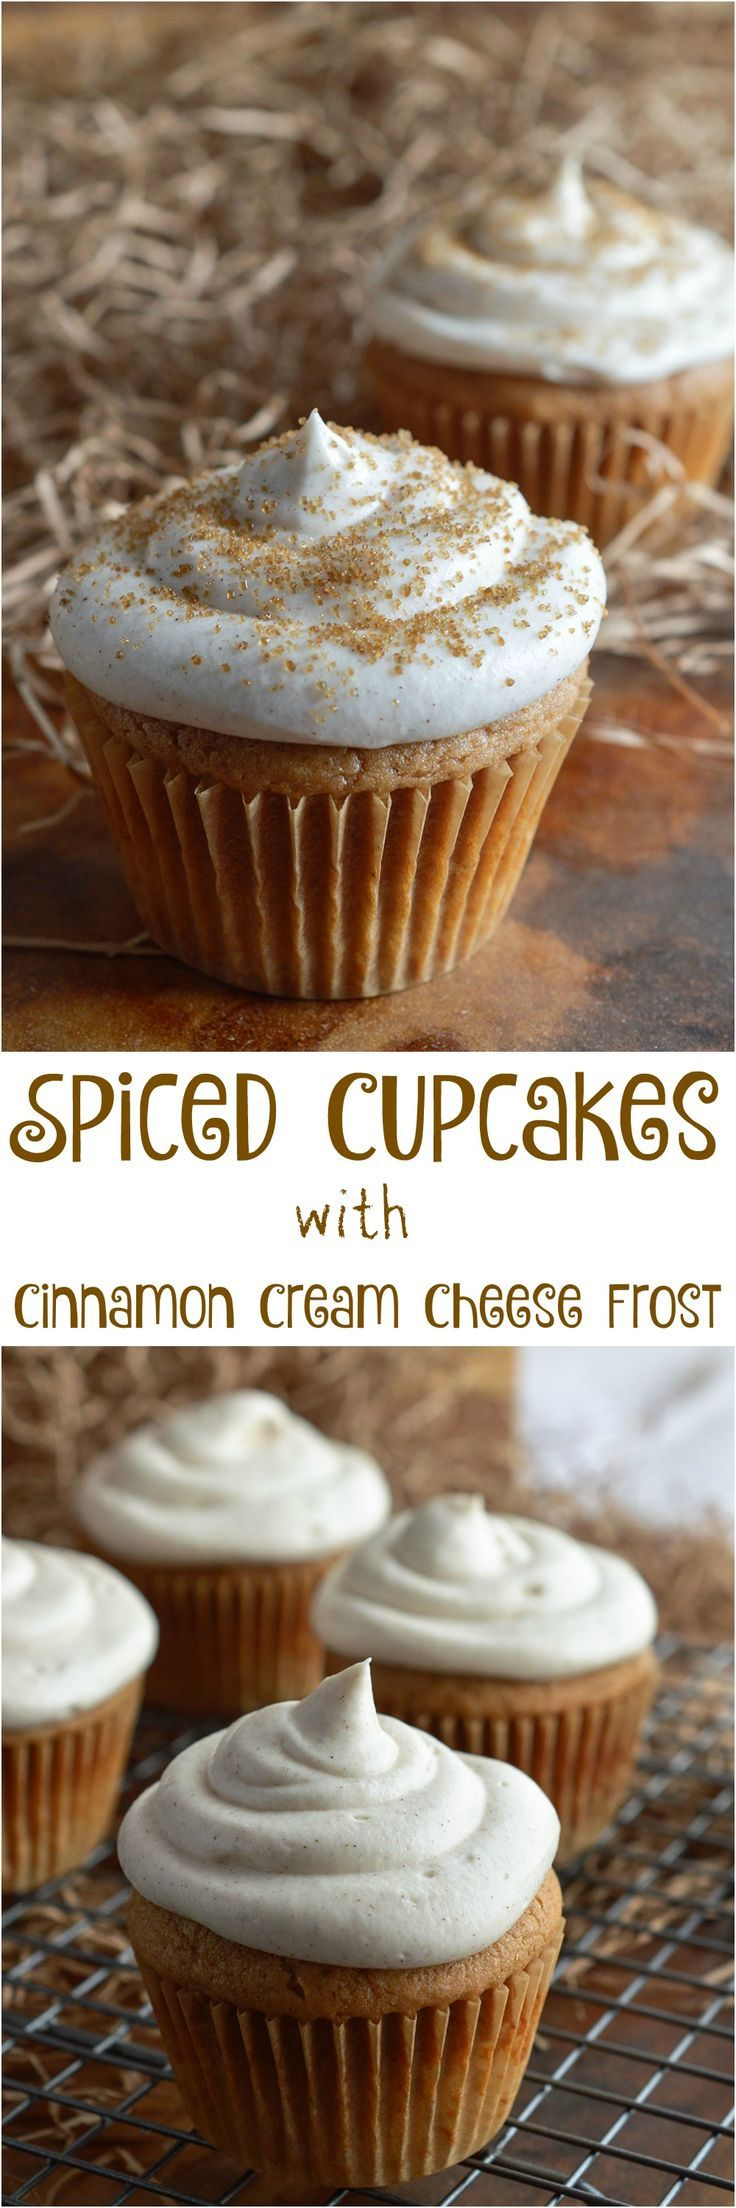 Spiced Cupcakes with Cinnamon Cream Cheese Frosting are the perfect Fall dessert! This easy recipe is great for holiday parties and meals. A very special secret ingredients adds a blast of flavor! #cupcakes #holiday http://wonkywonderful.com